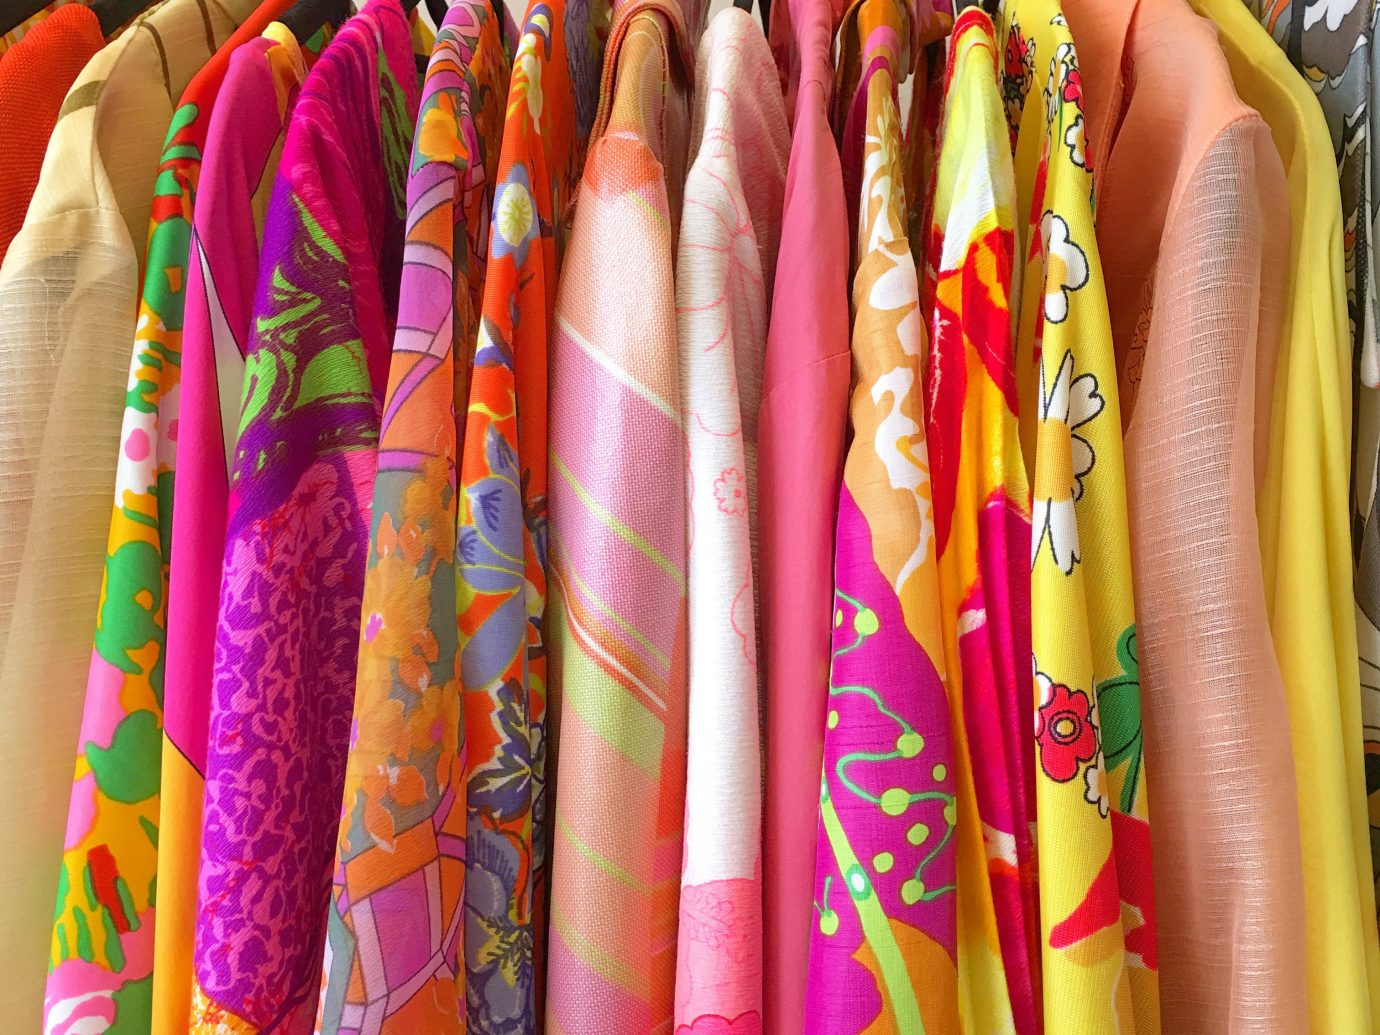 Jetsetter Guides color indoor clothing different yellow bunch row rack hanging many pattern arm fashion accessory lots textile hand finger various clothes line assortment colorful several lined colored